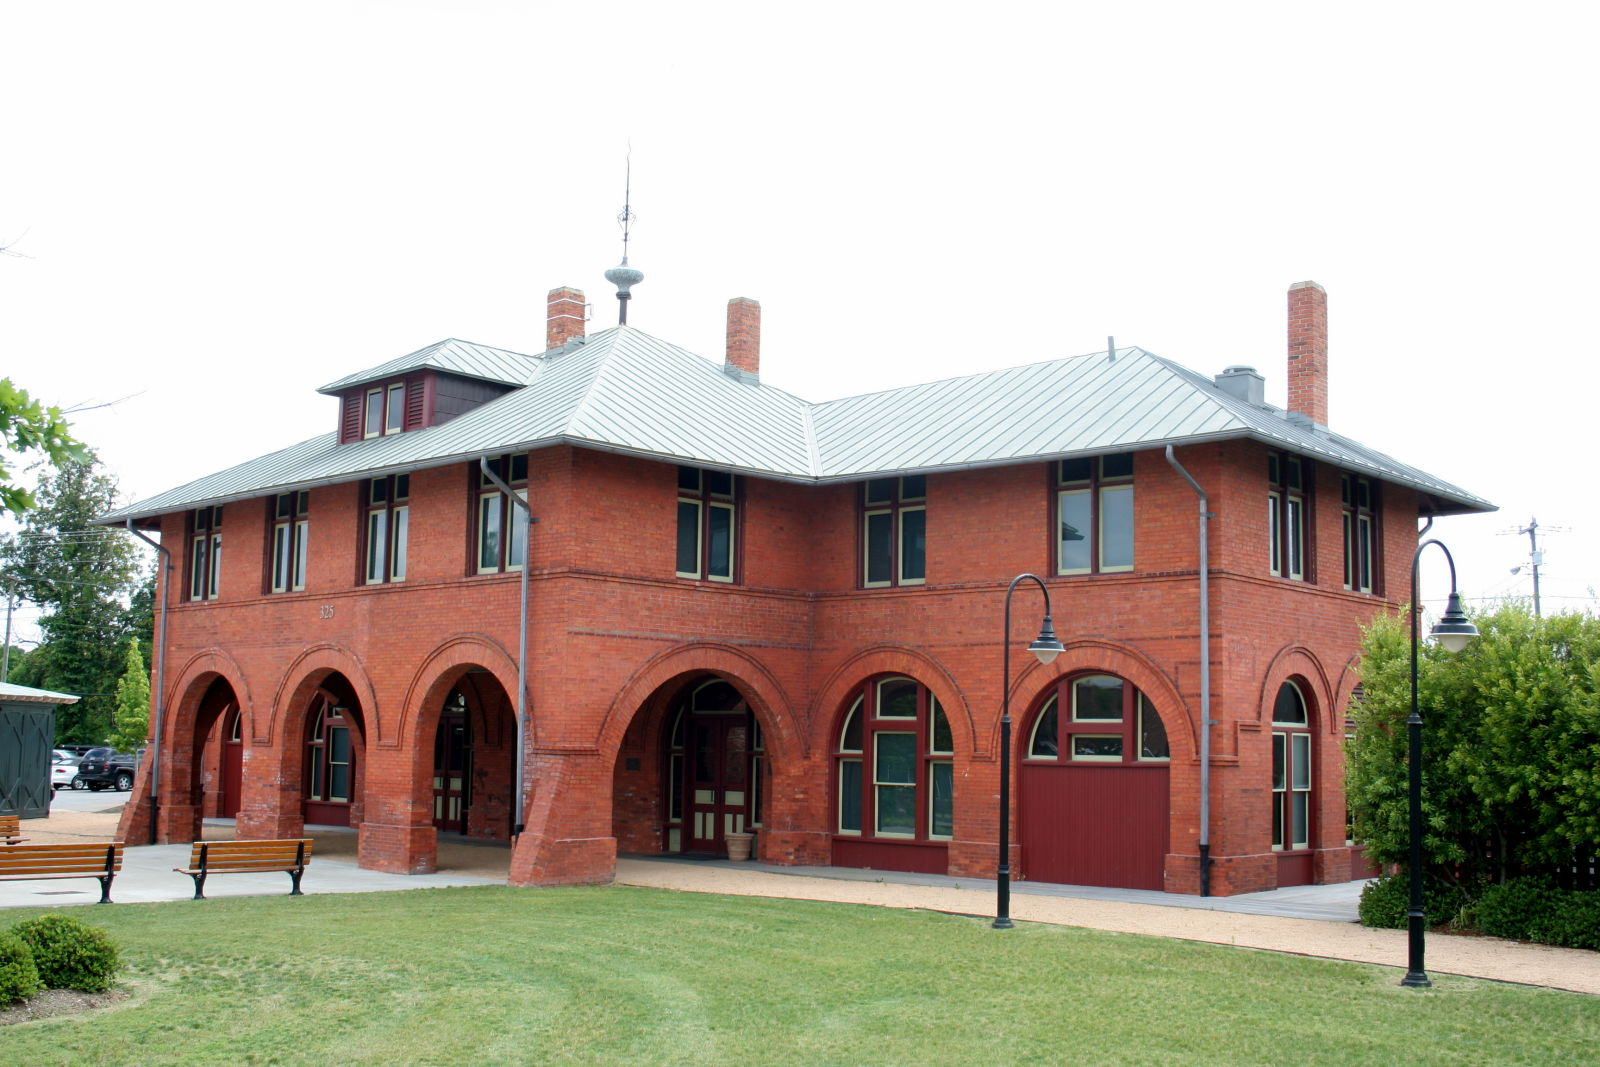 The Fayetteville Area Transportation and Local History Museum is located in former the Cape Fear and Yadkin Valley Railway Depot, which was built in 1890.